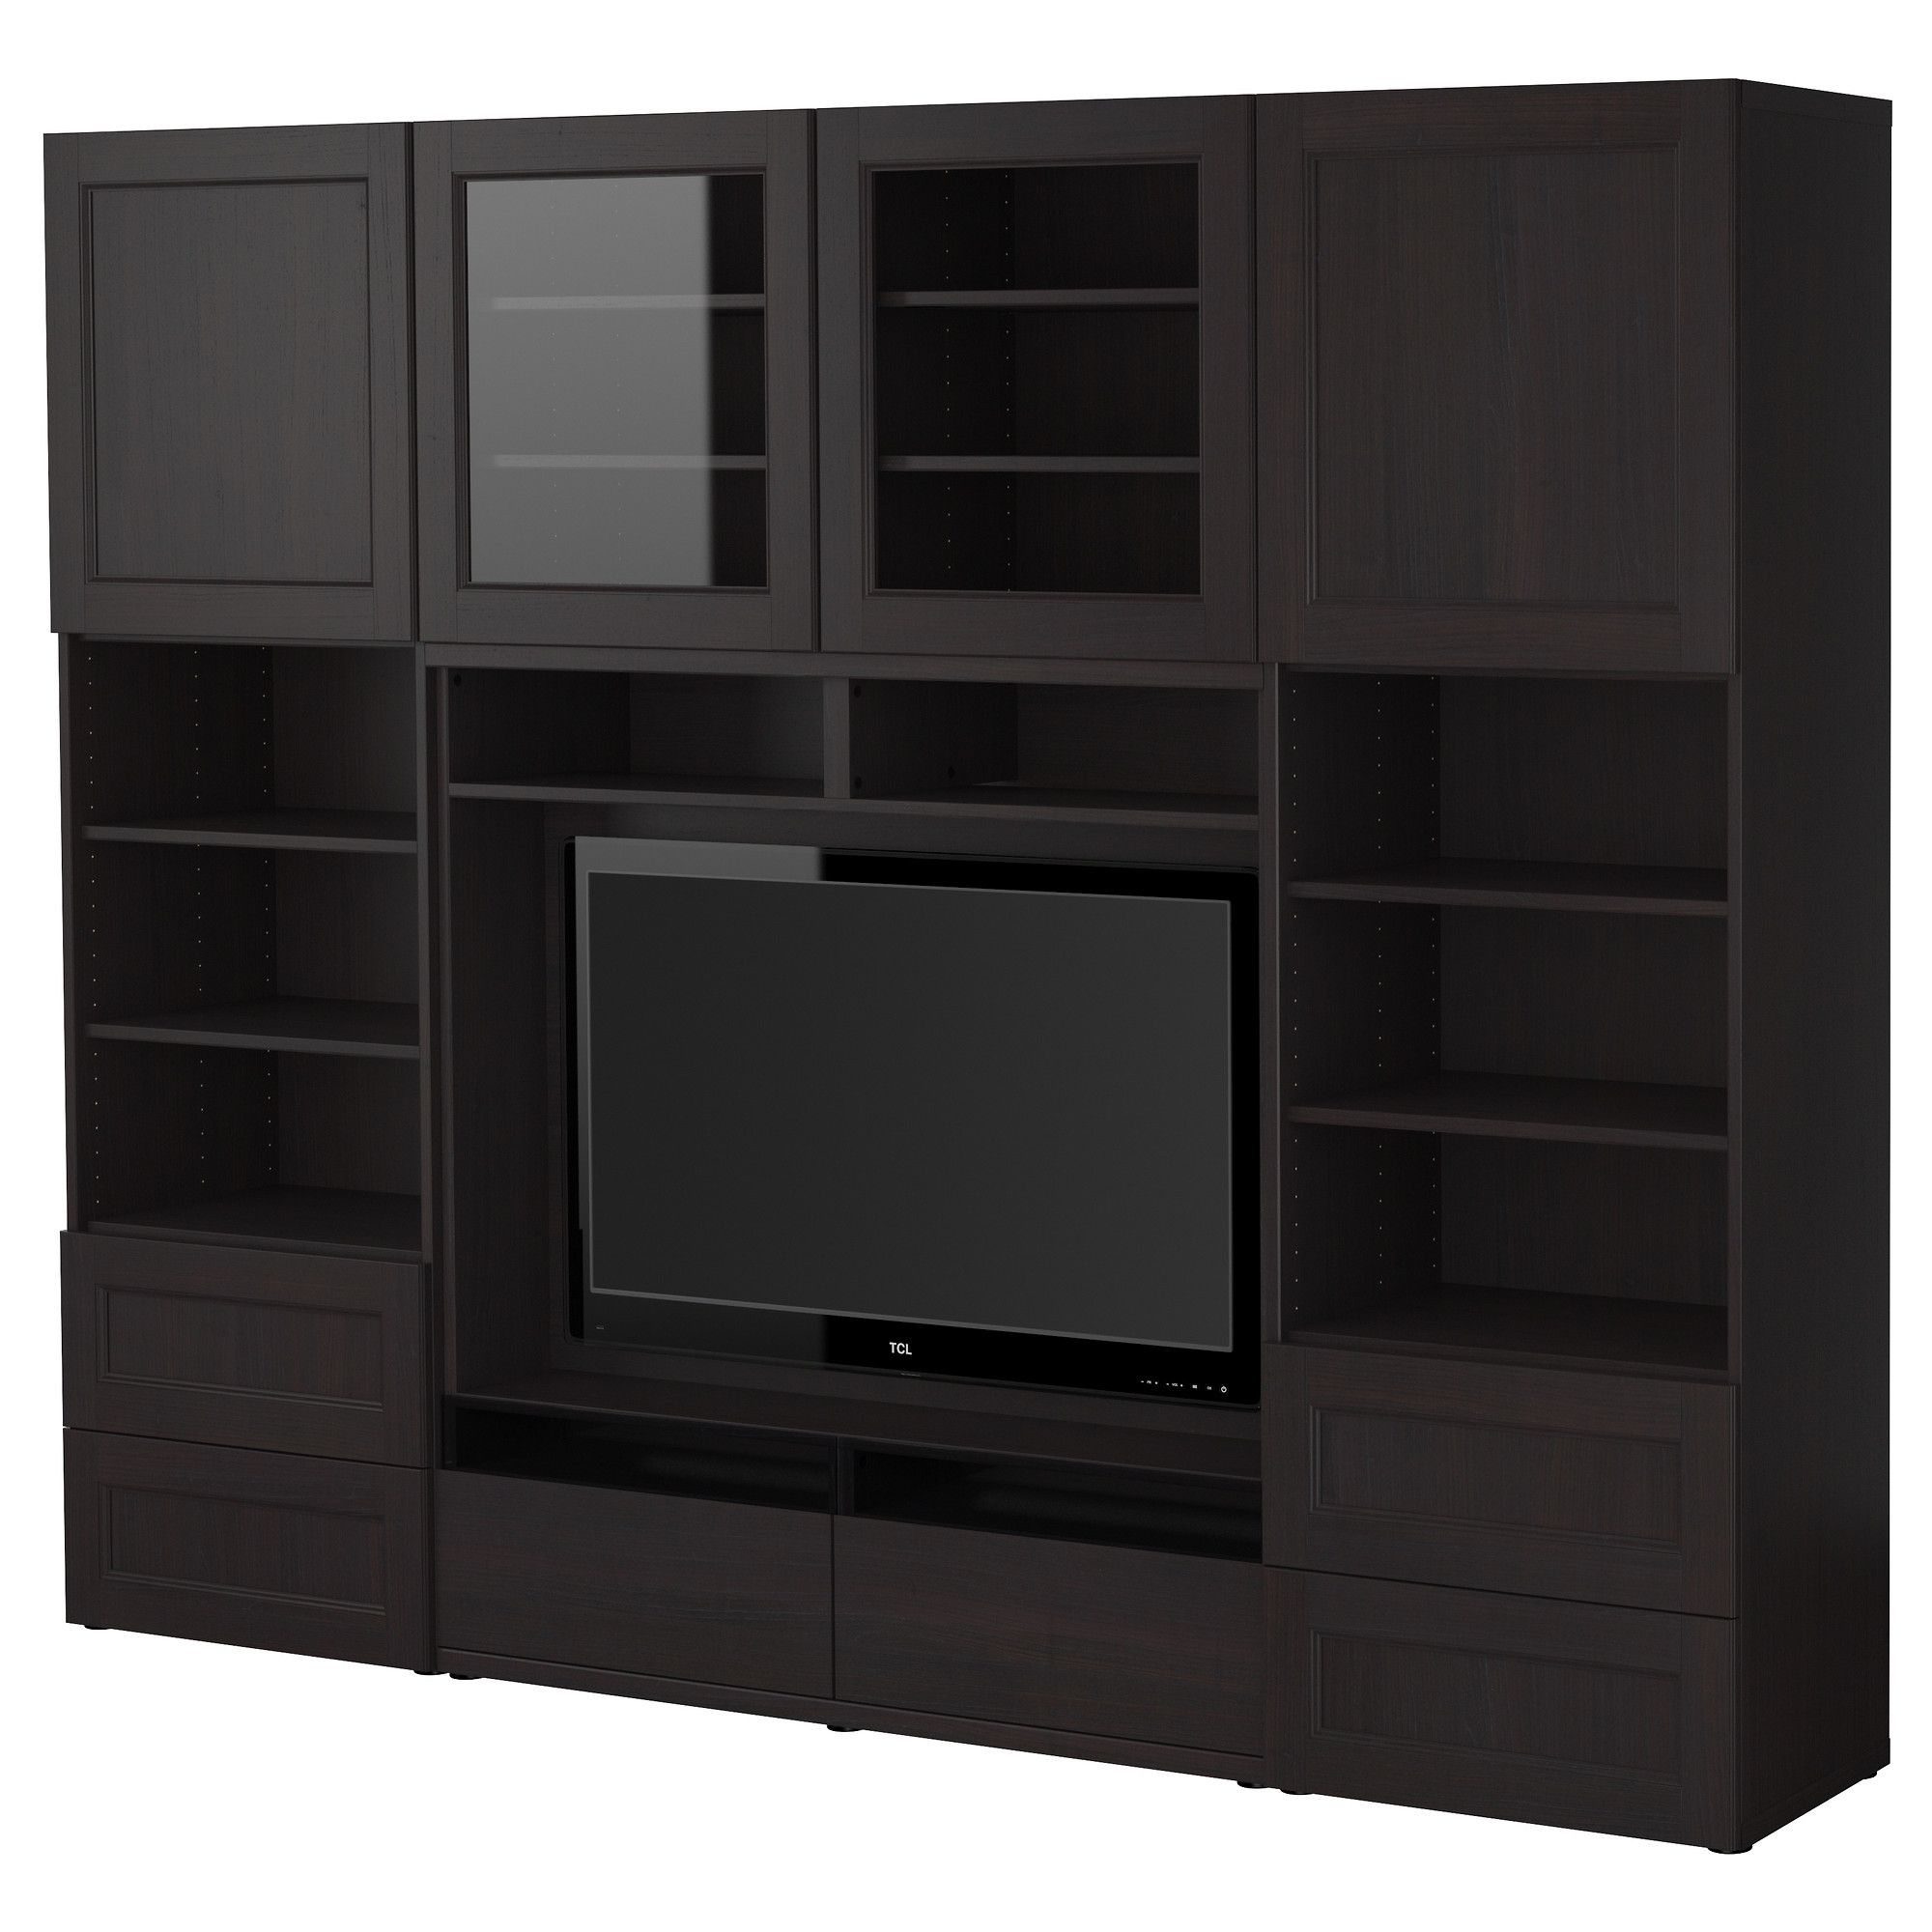 Best Tv Storage Combination Black Brown 240x40x192 Cm Ikea  # Meuble Tv Brun Noir